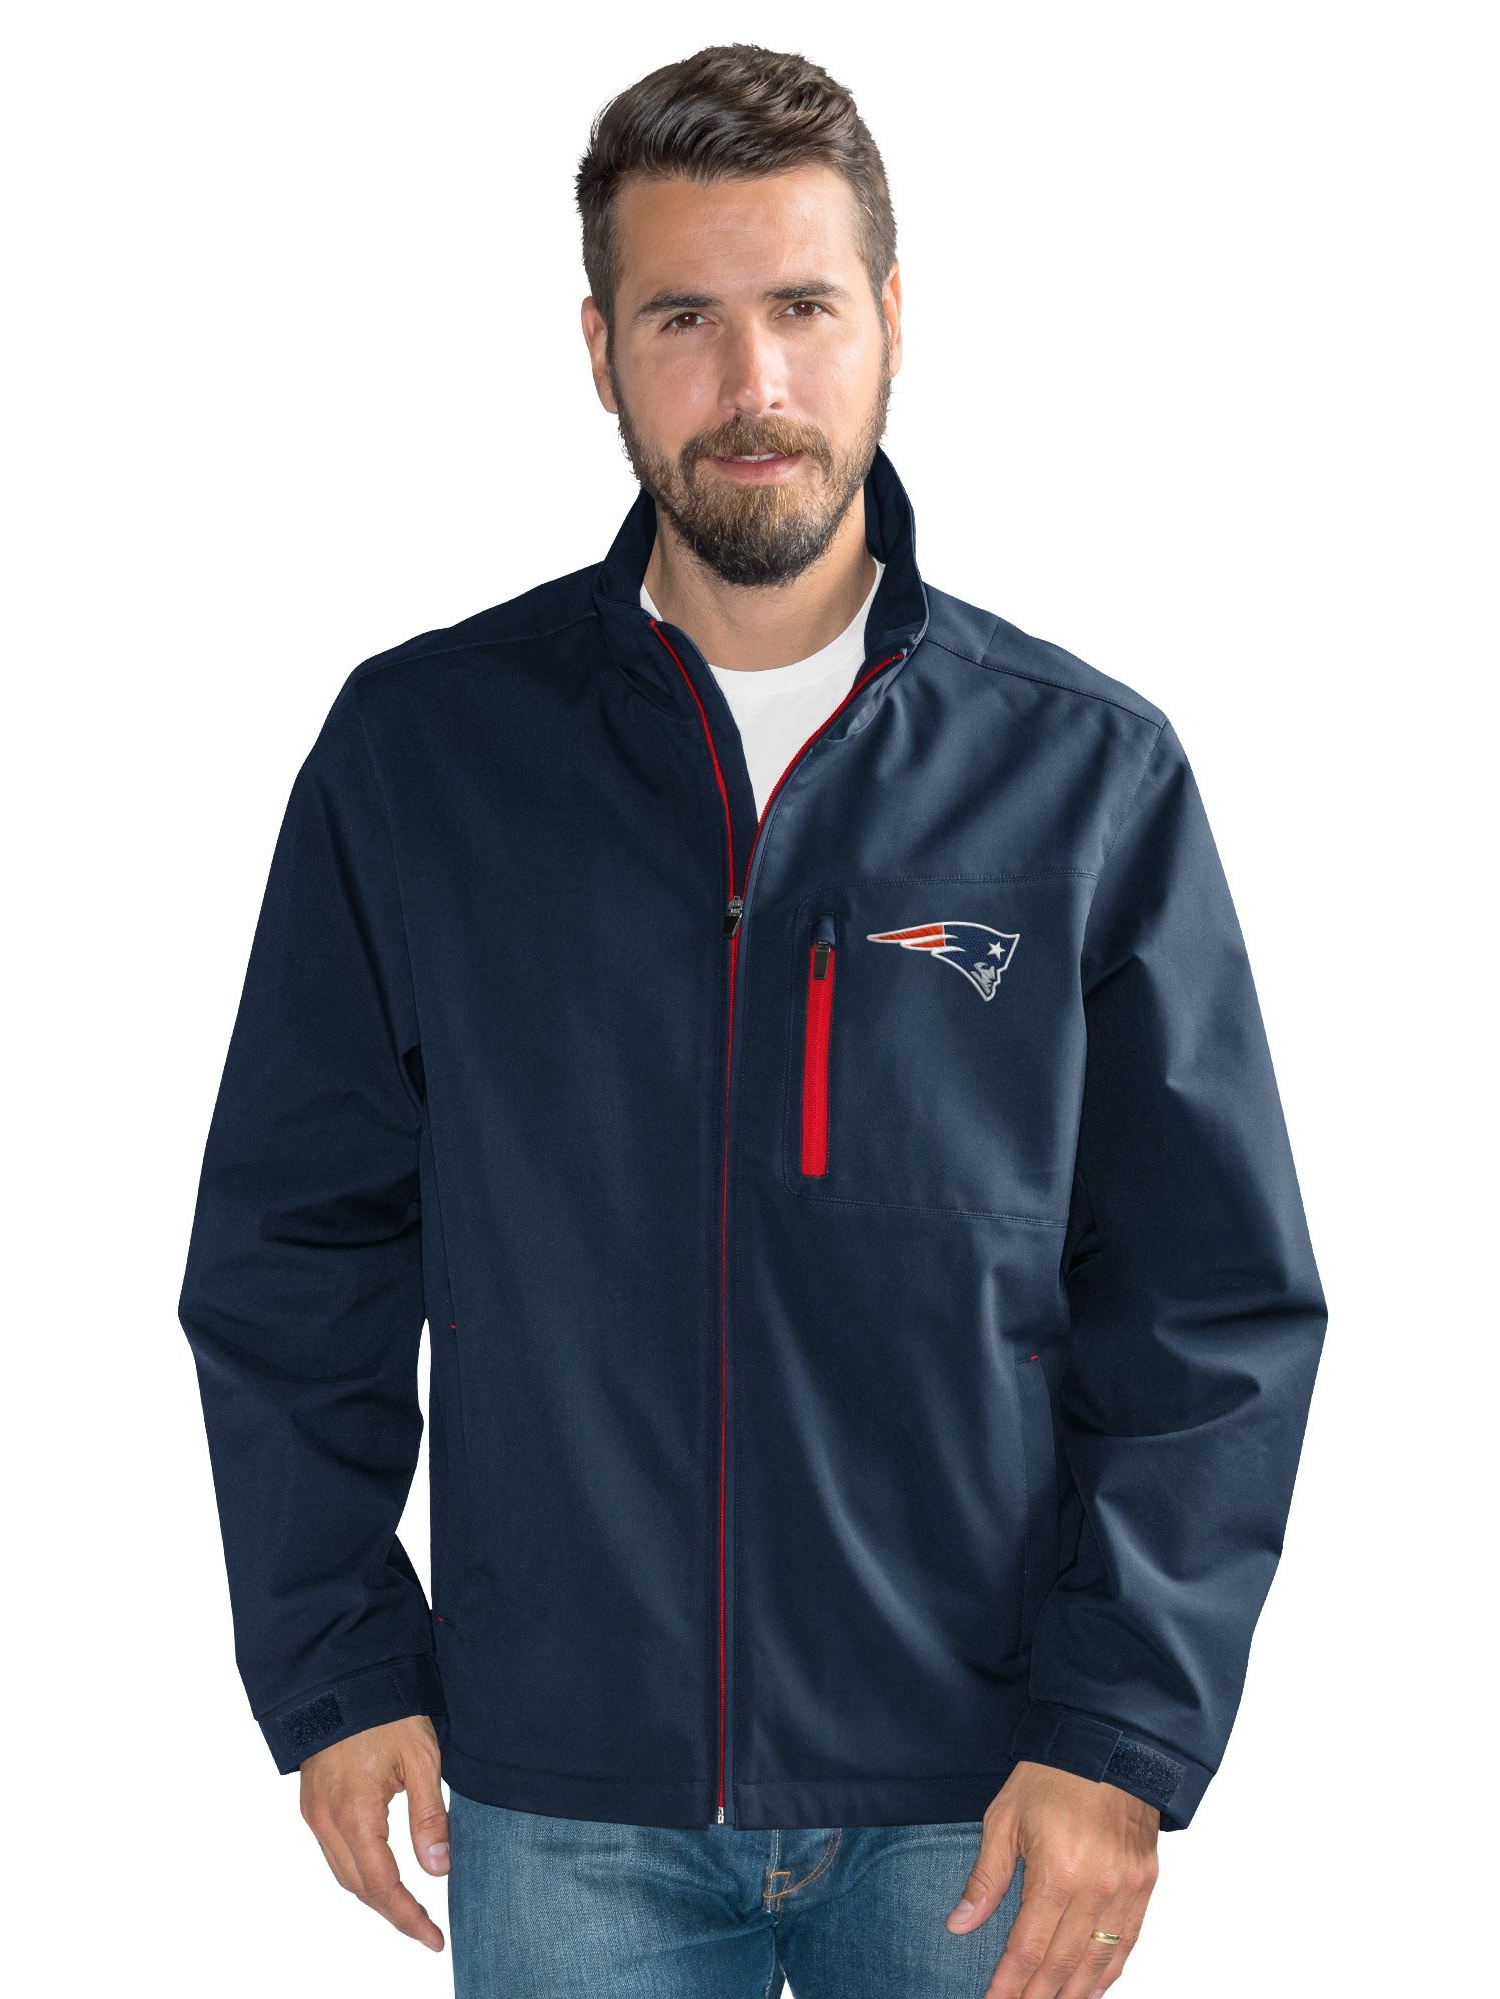 New England Patriots Men's Defender Soft Shell Full Zip Jacket by G-III Sports